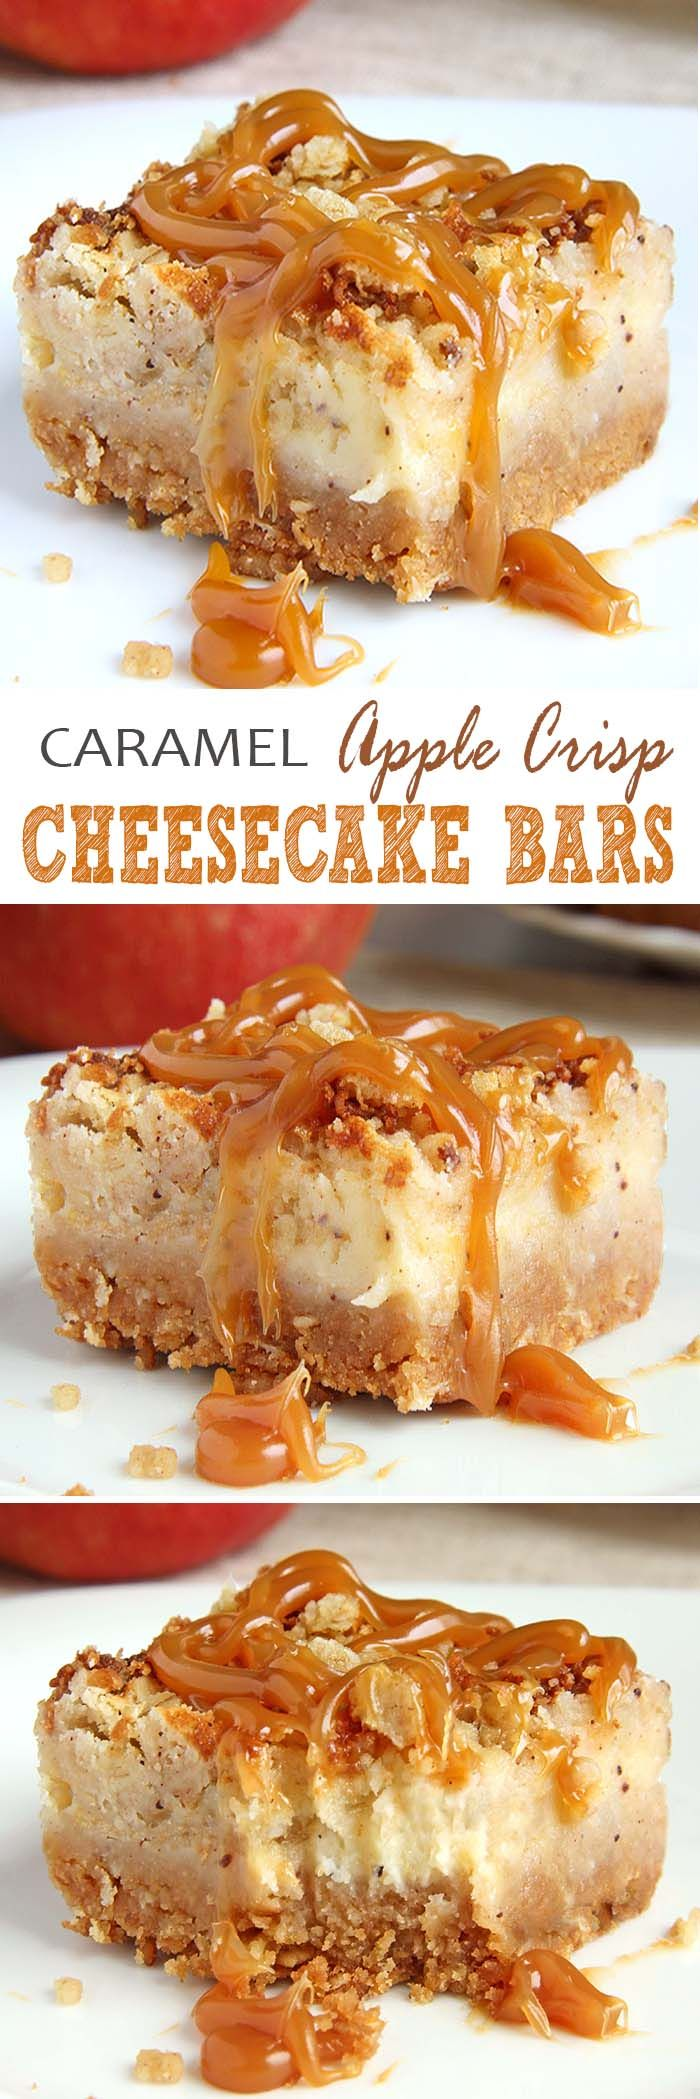 Caramel Apple Crisp Cheesecake Bars #autumnseason